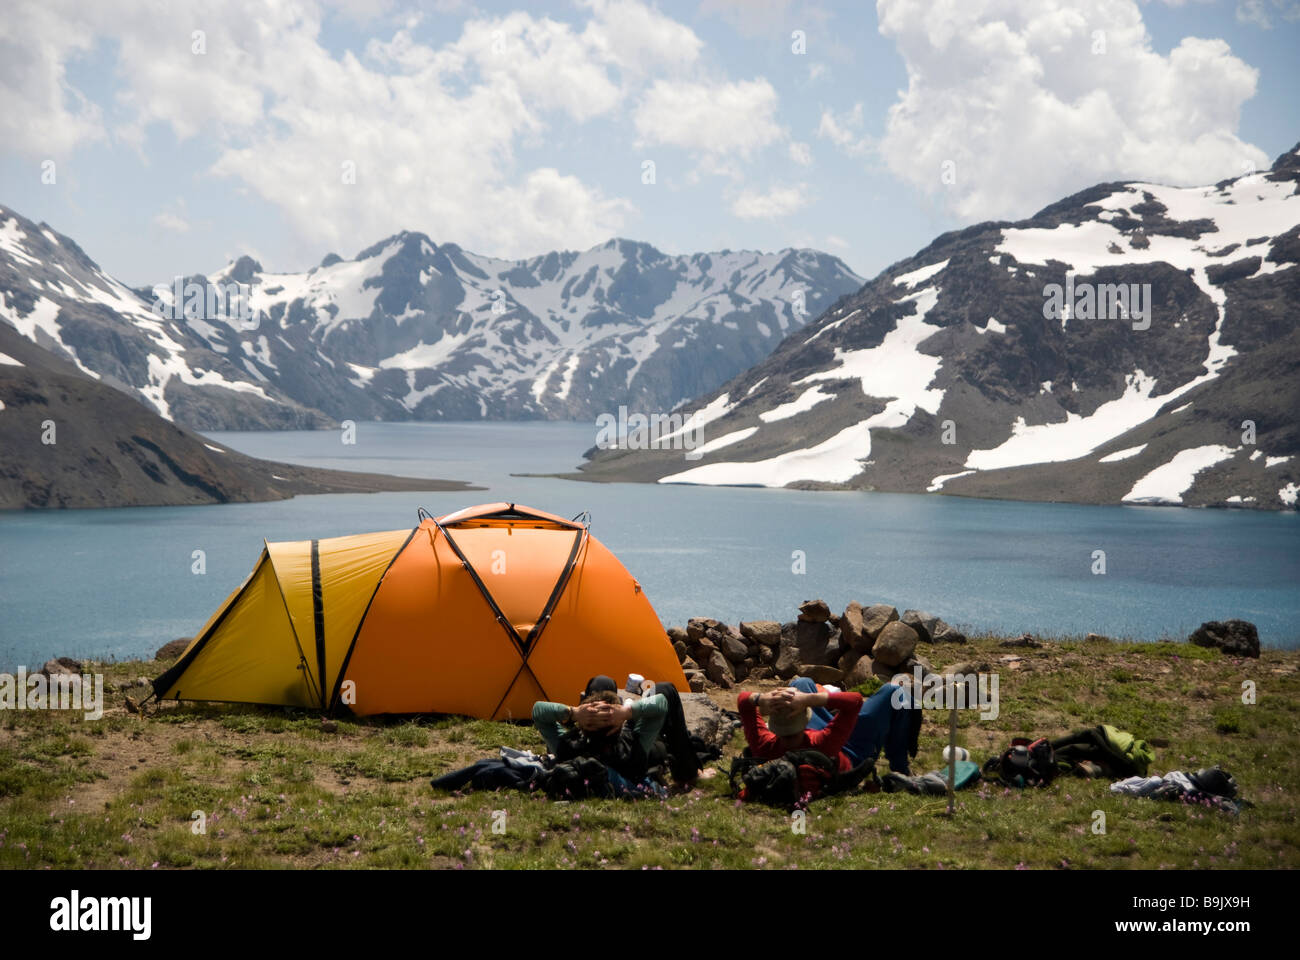 Two men rest next to their orange tent enjoying the dramatic views over a high alpine lake. - Stock Image